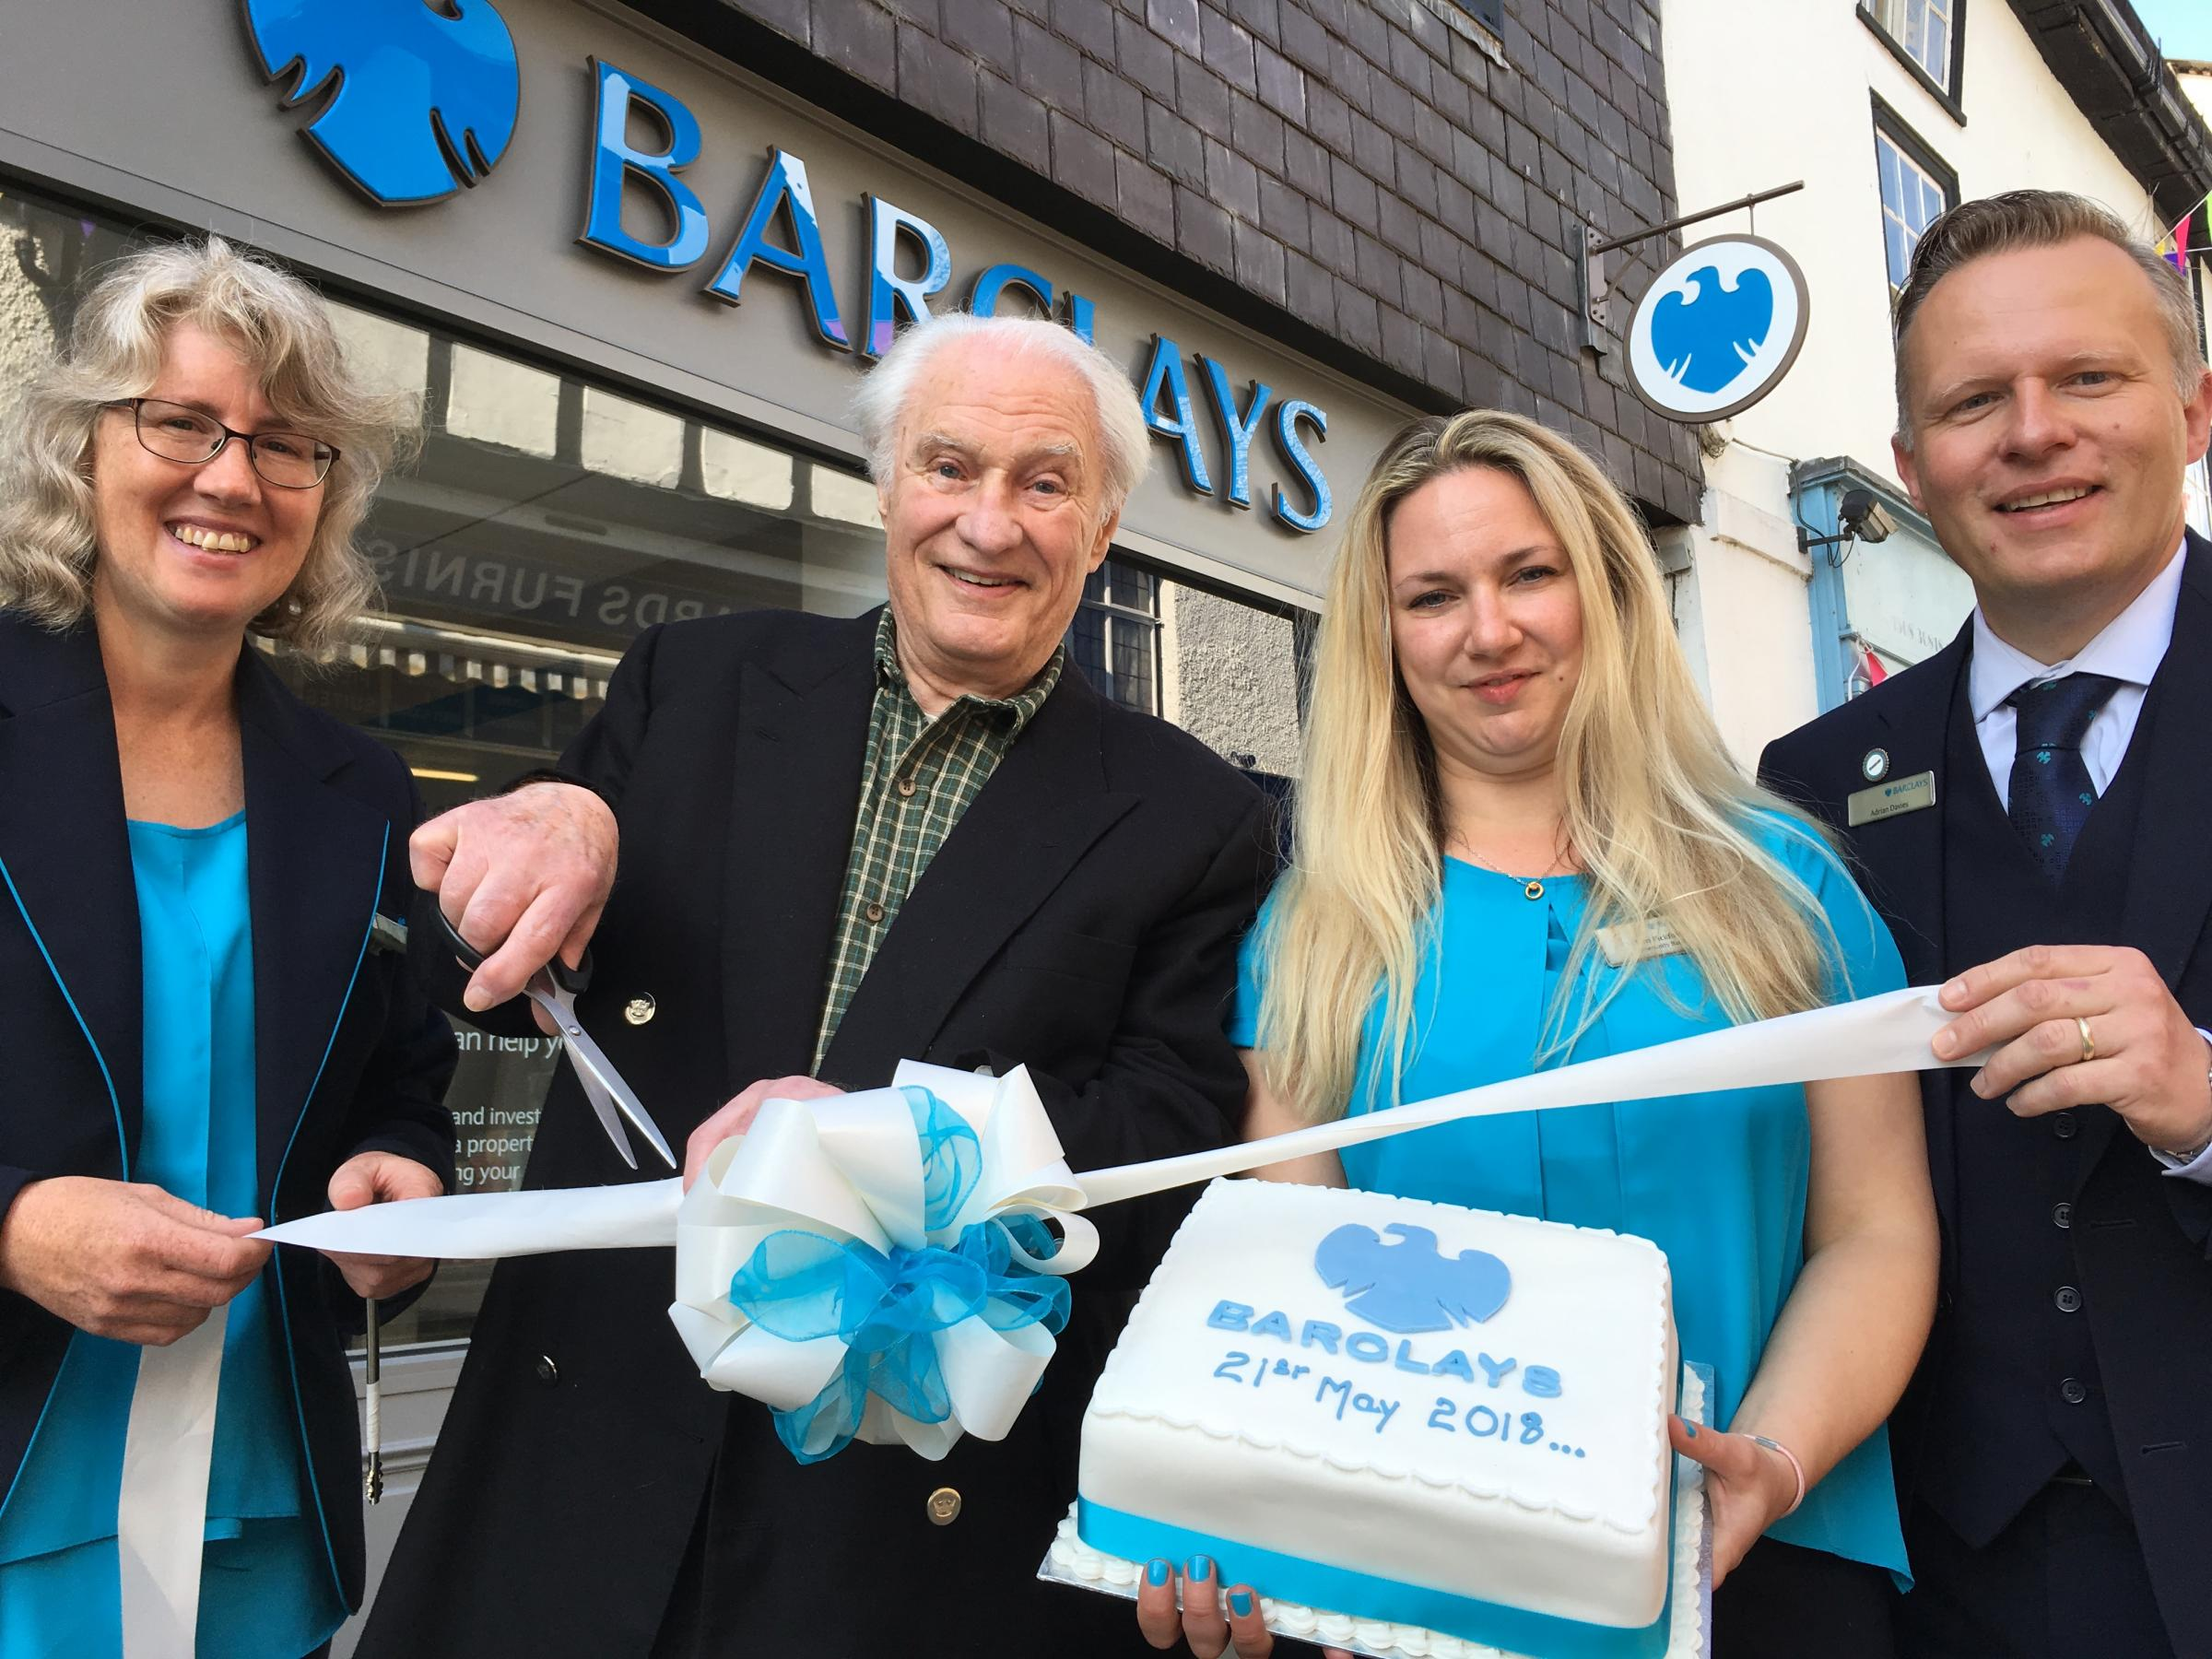 left to right Barclays staff member Joanne Plante, Mr John Greenwood, Kim Pickford (Branch Manager) and Adrian Davies, Community Banking Director for the area.